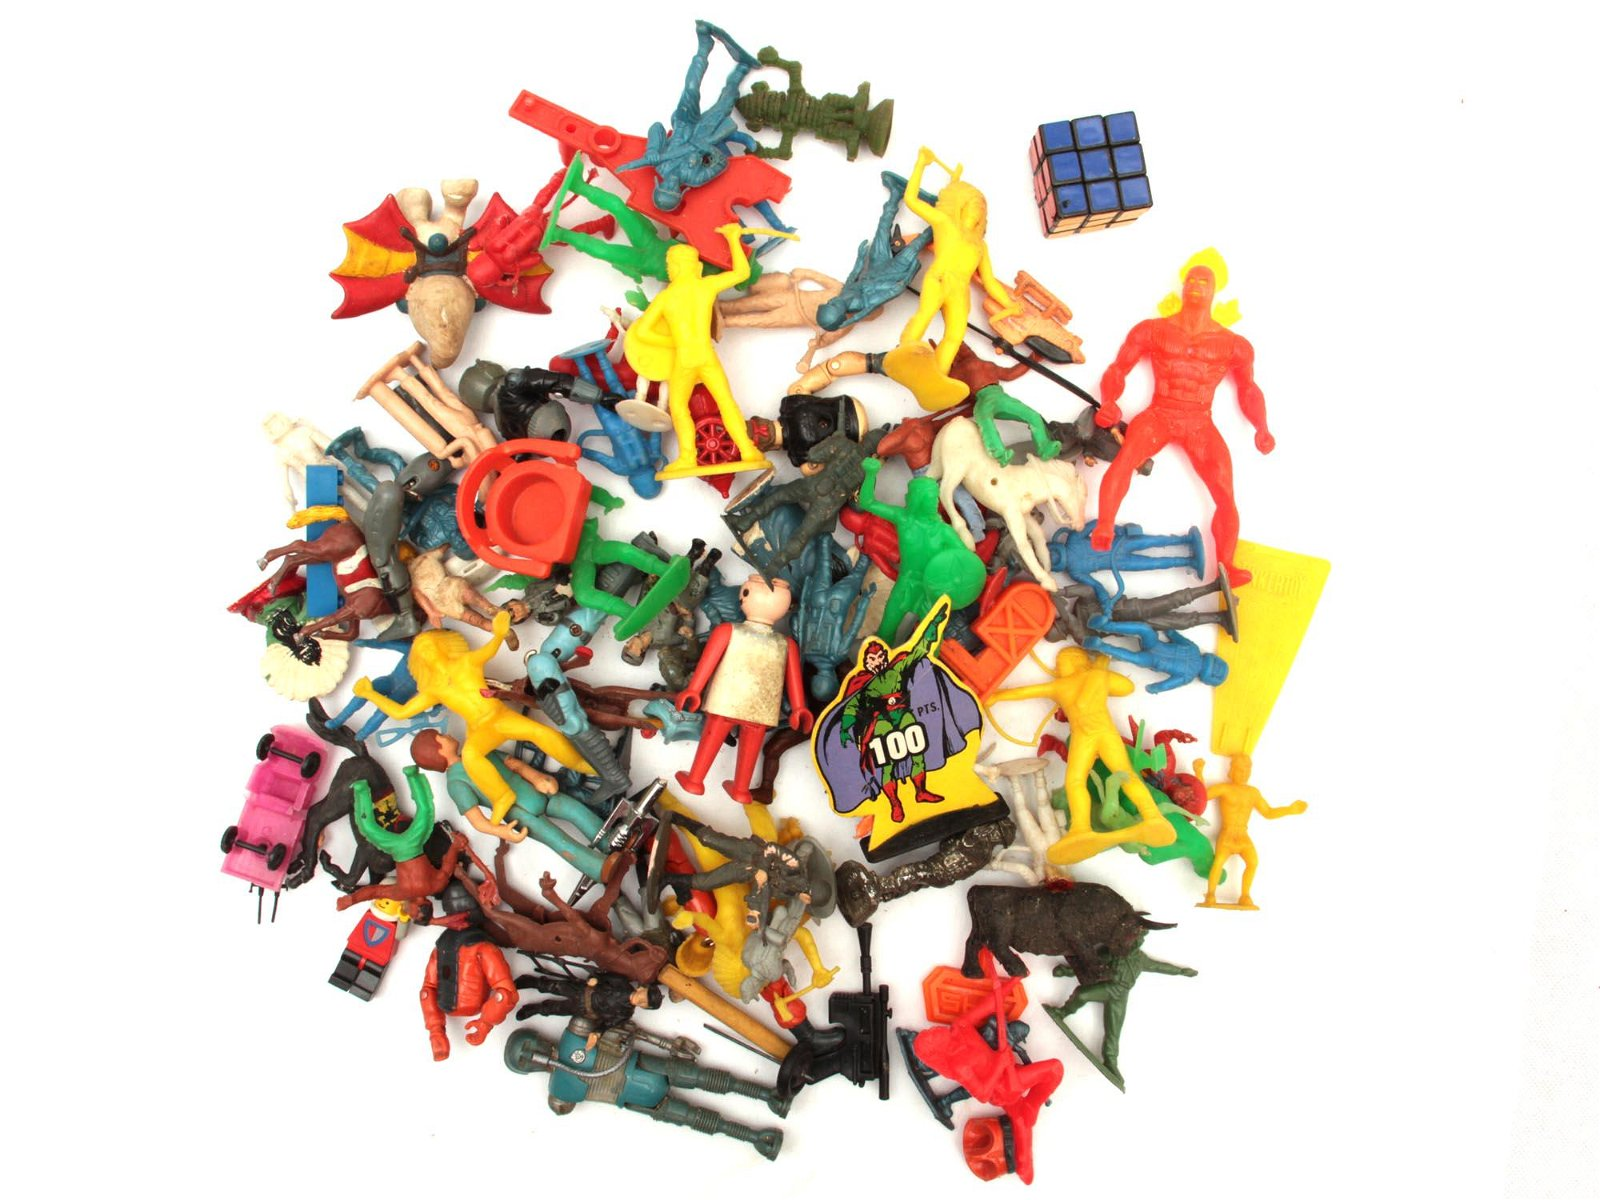 A LOT OF ASSORTED VINTAGE TOYS